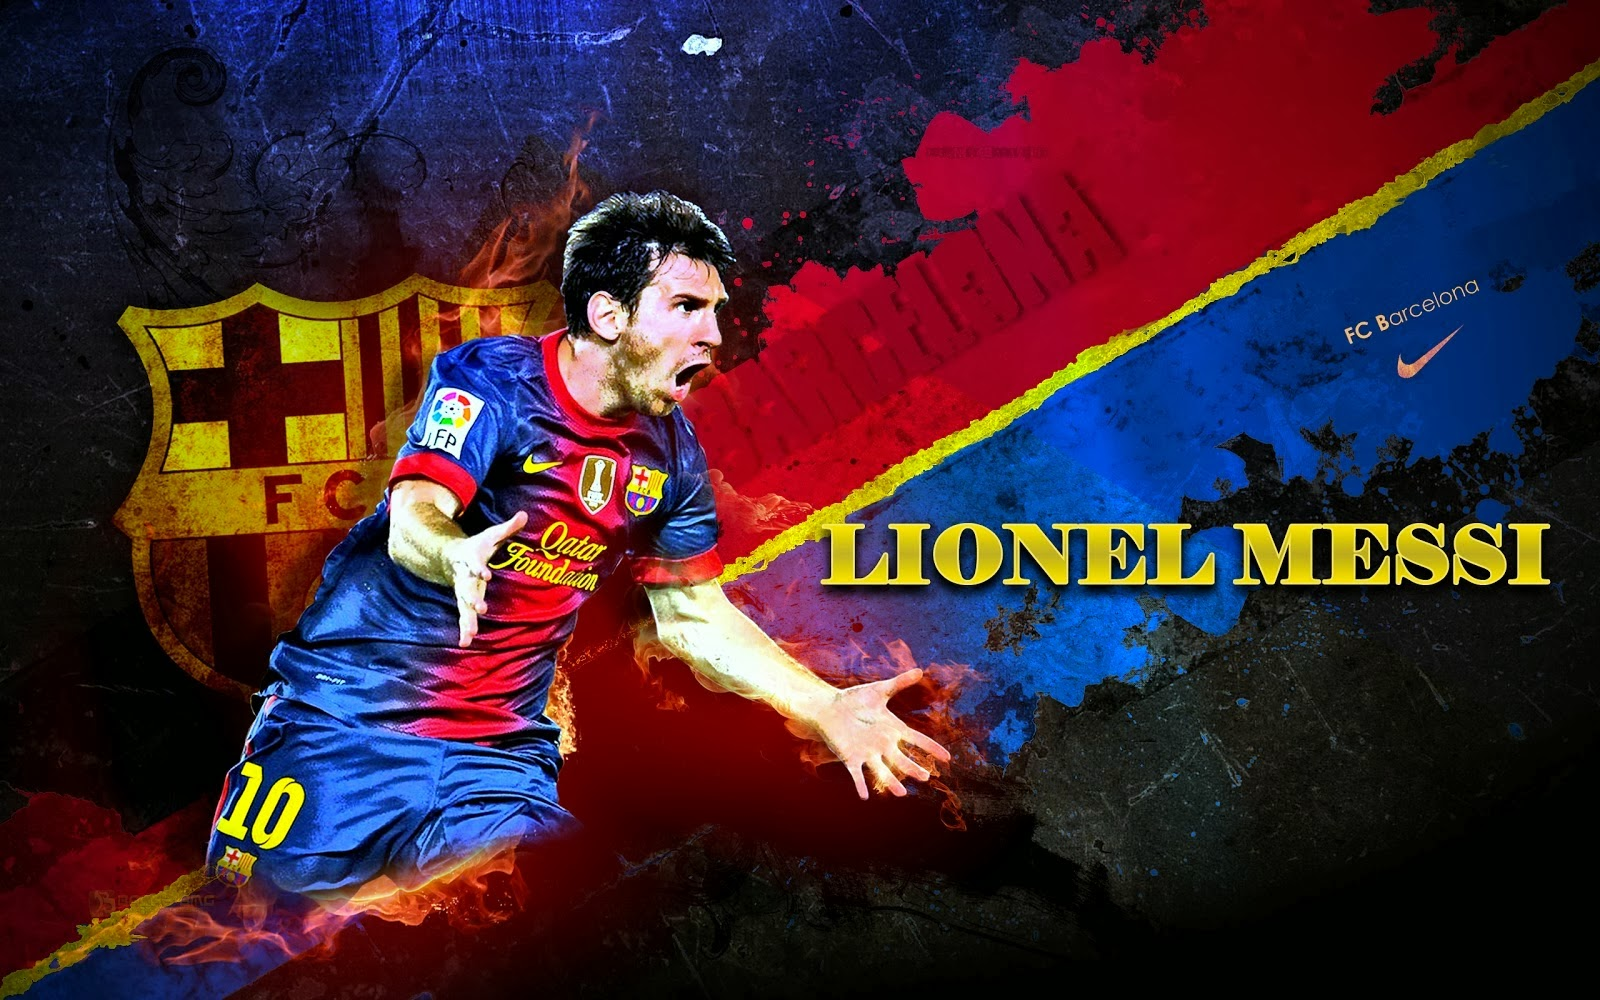 Lionel Messi HQ Wallpapers 2014 2015 1600x1000